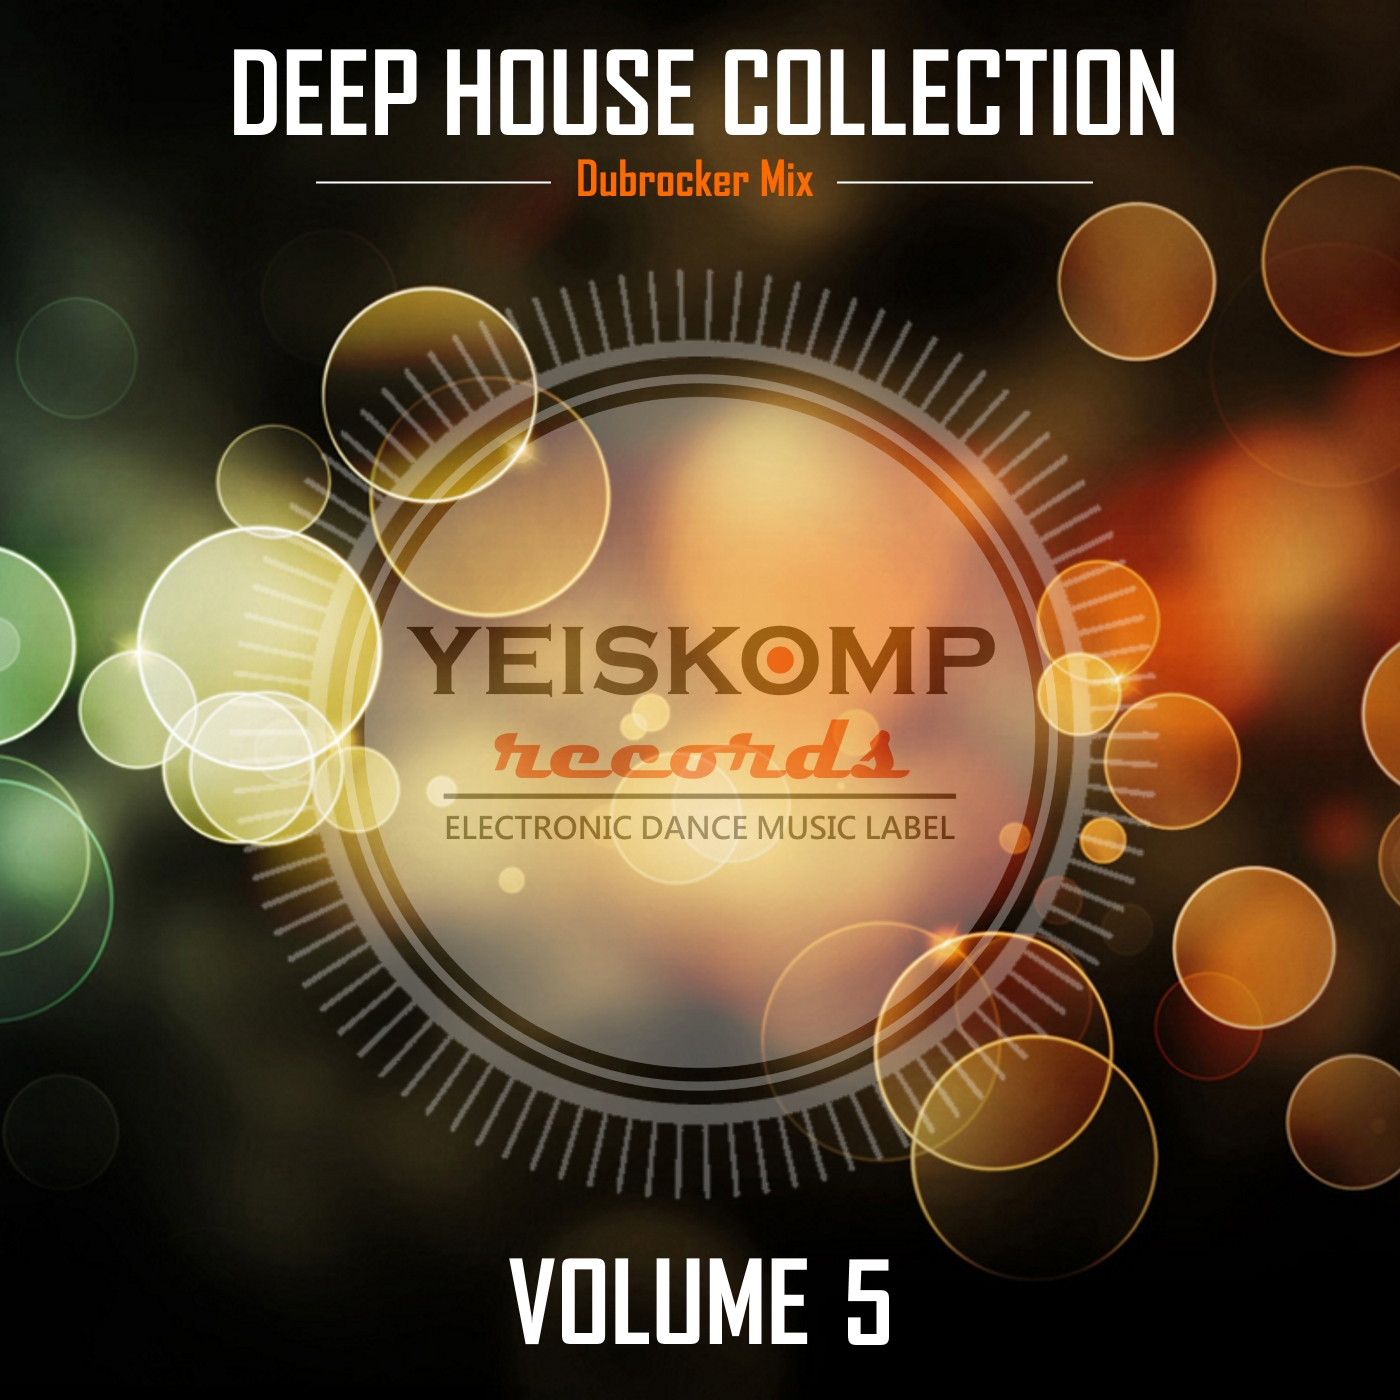 Deep House Collection by Dubrocker, Vol. 5